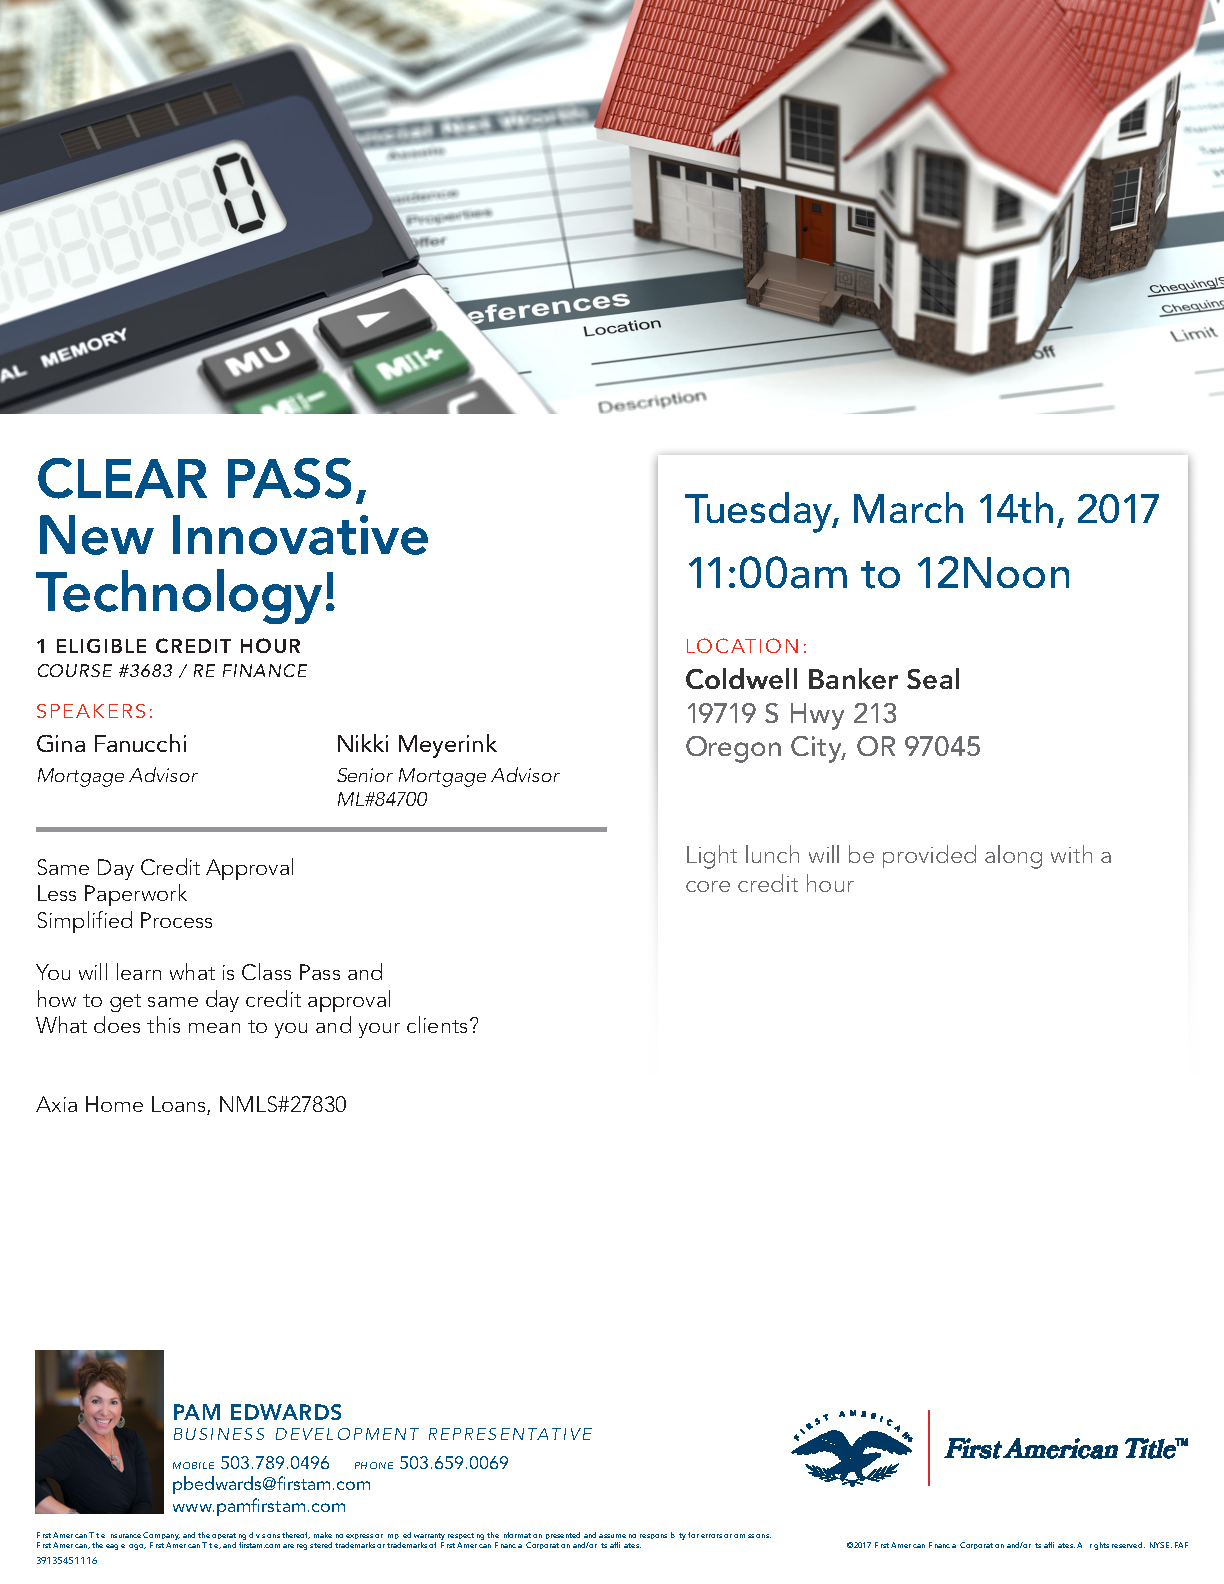 CLEAR_PASS_Oregon_City_March_14th